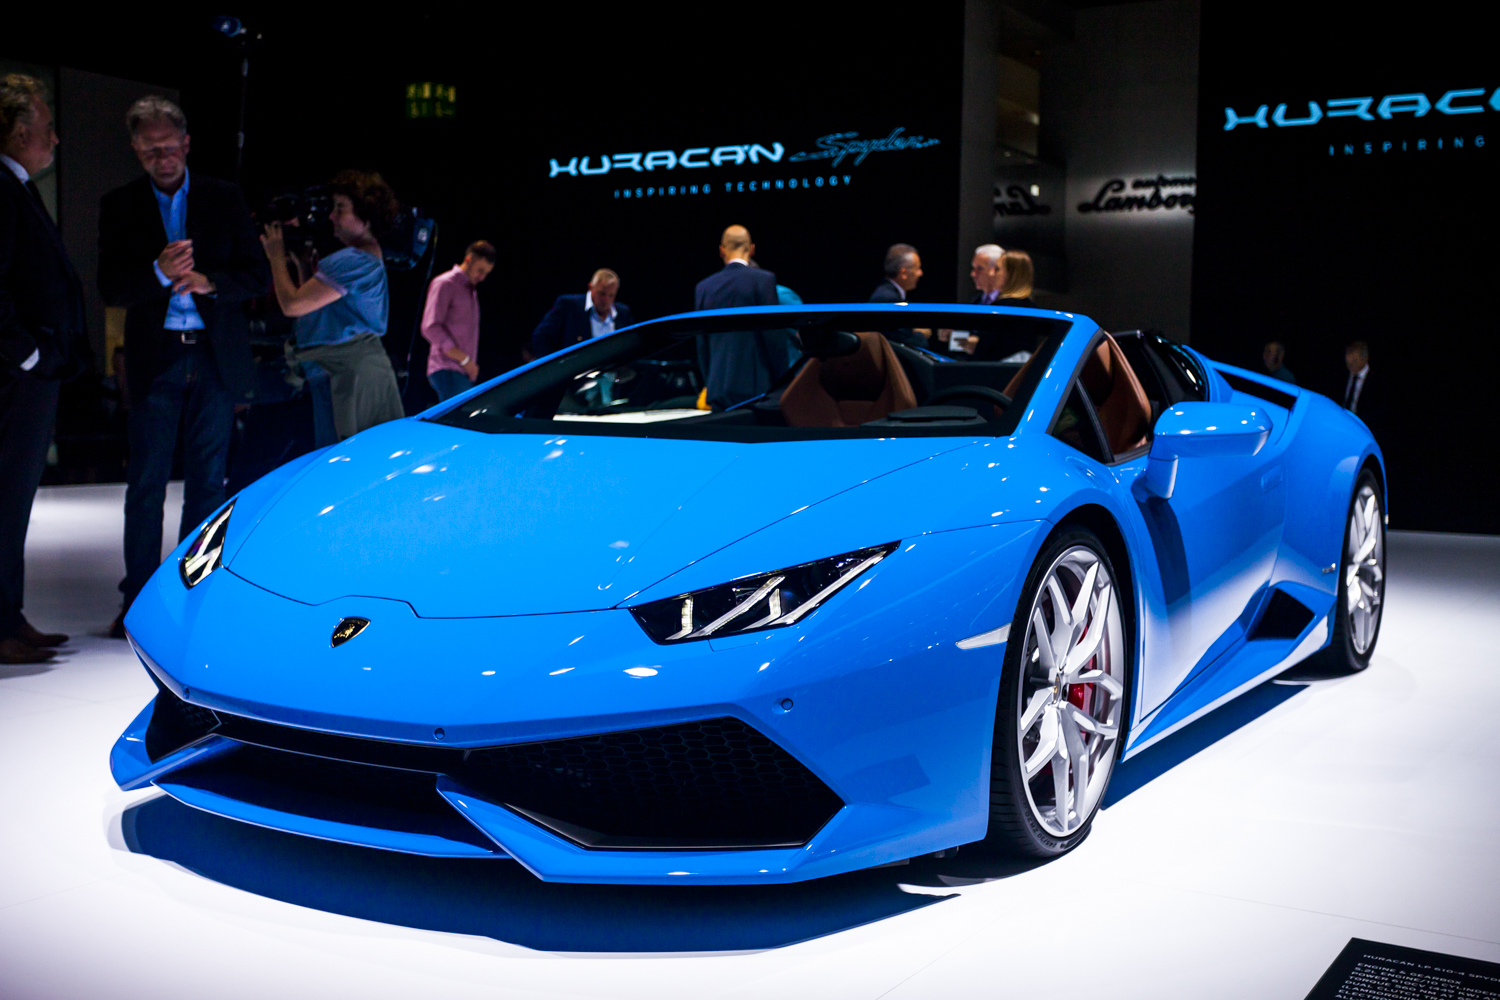 2015 lamborghini huracan blue 200 interior and exterior images. Black Bedroom Furniture Sets. Home Design Ideas